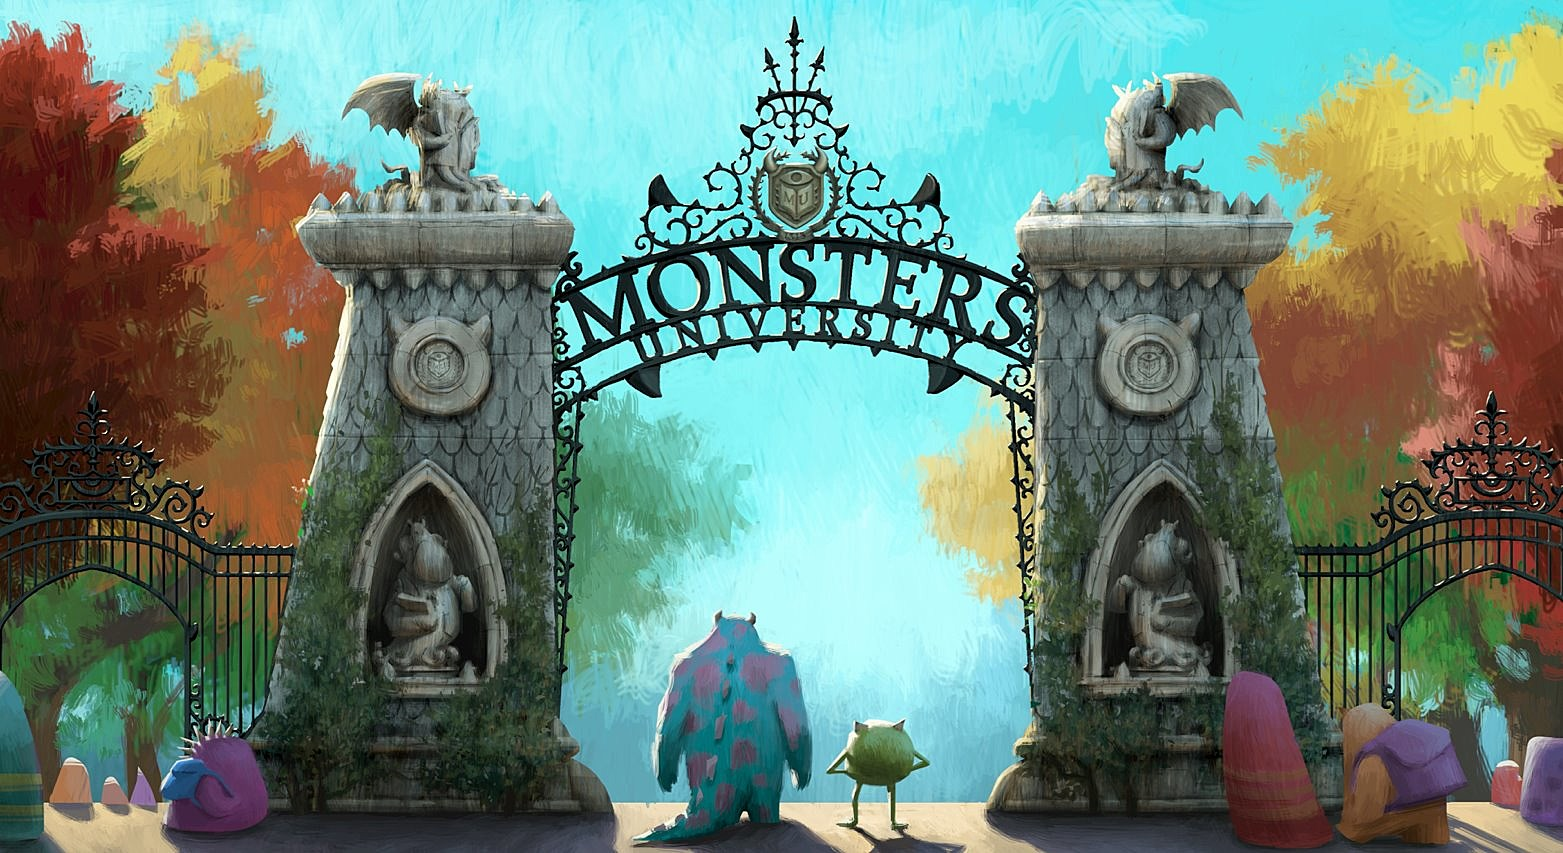 Monsters Inc 2 Concept Art Get A Good Look At